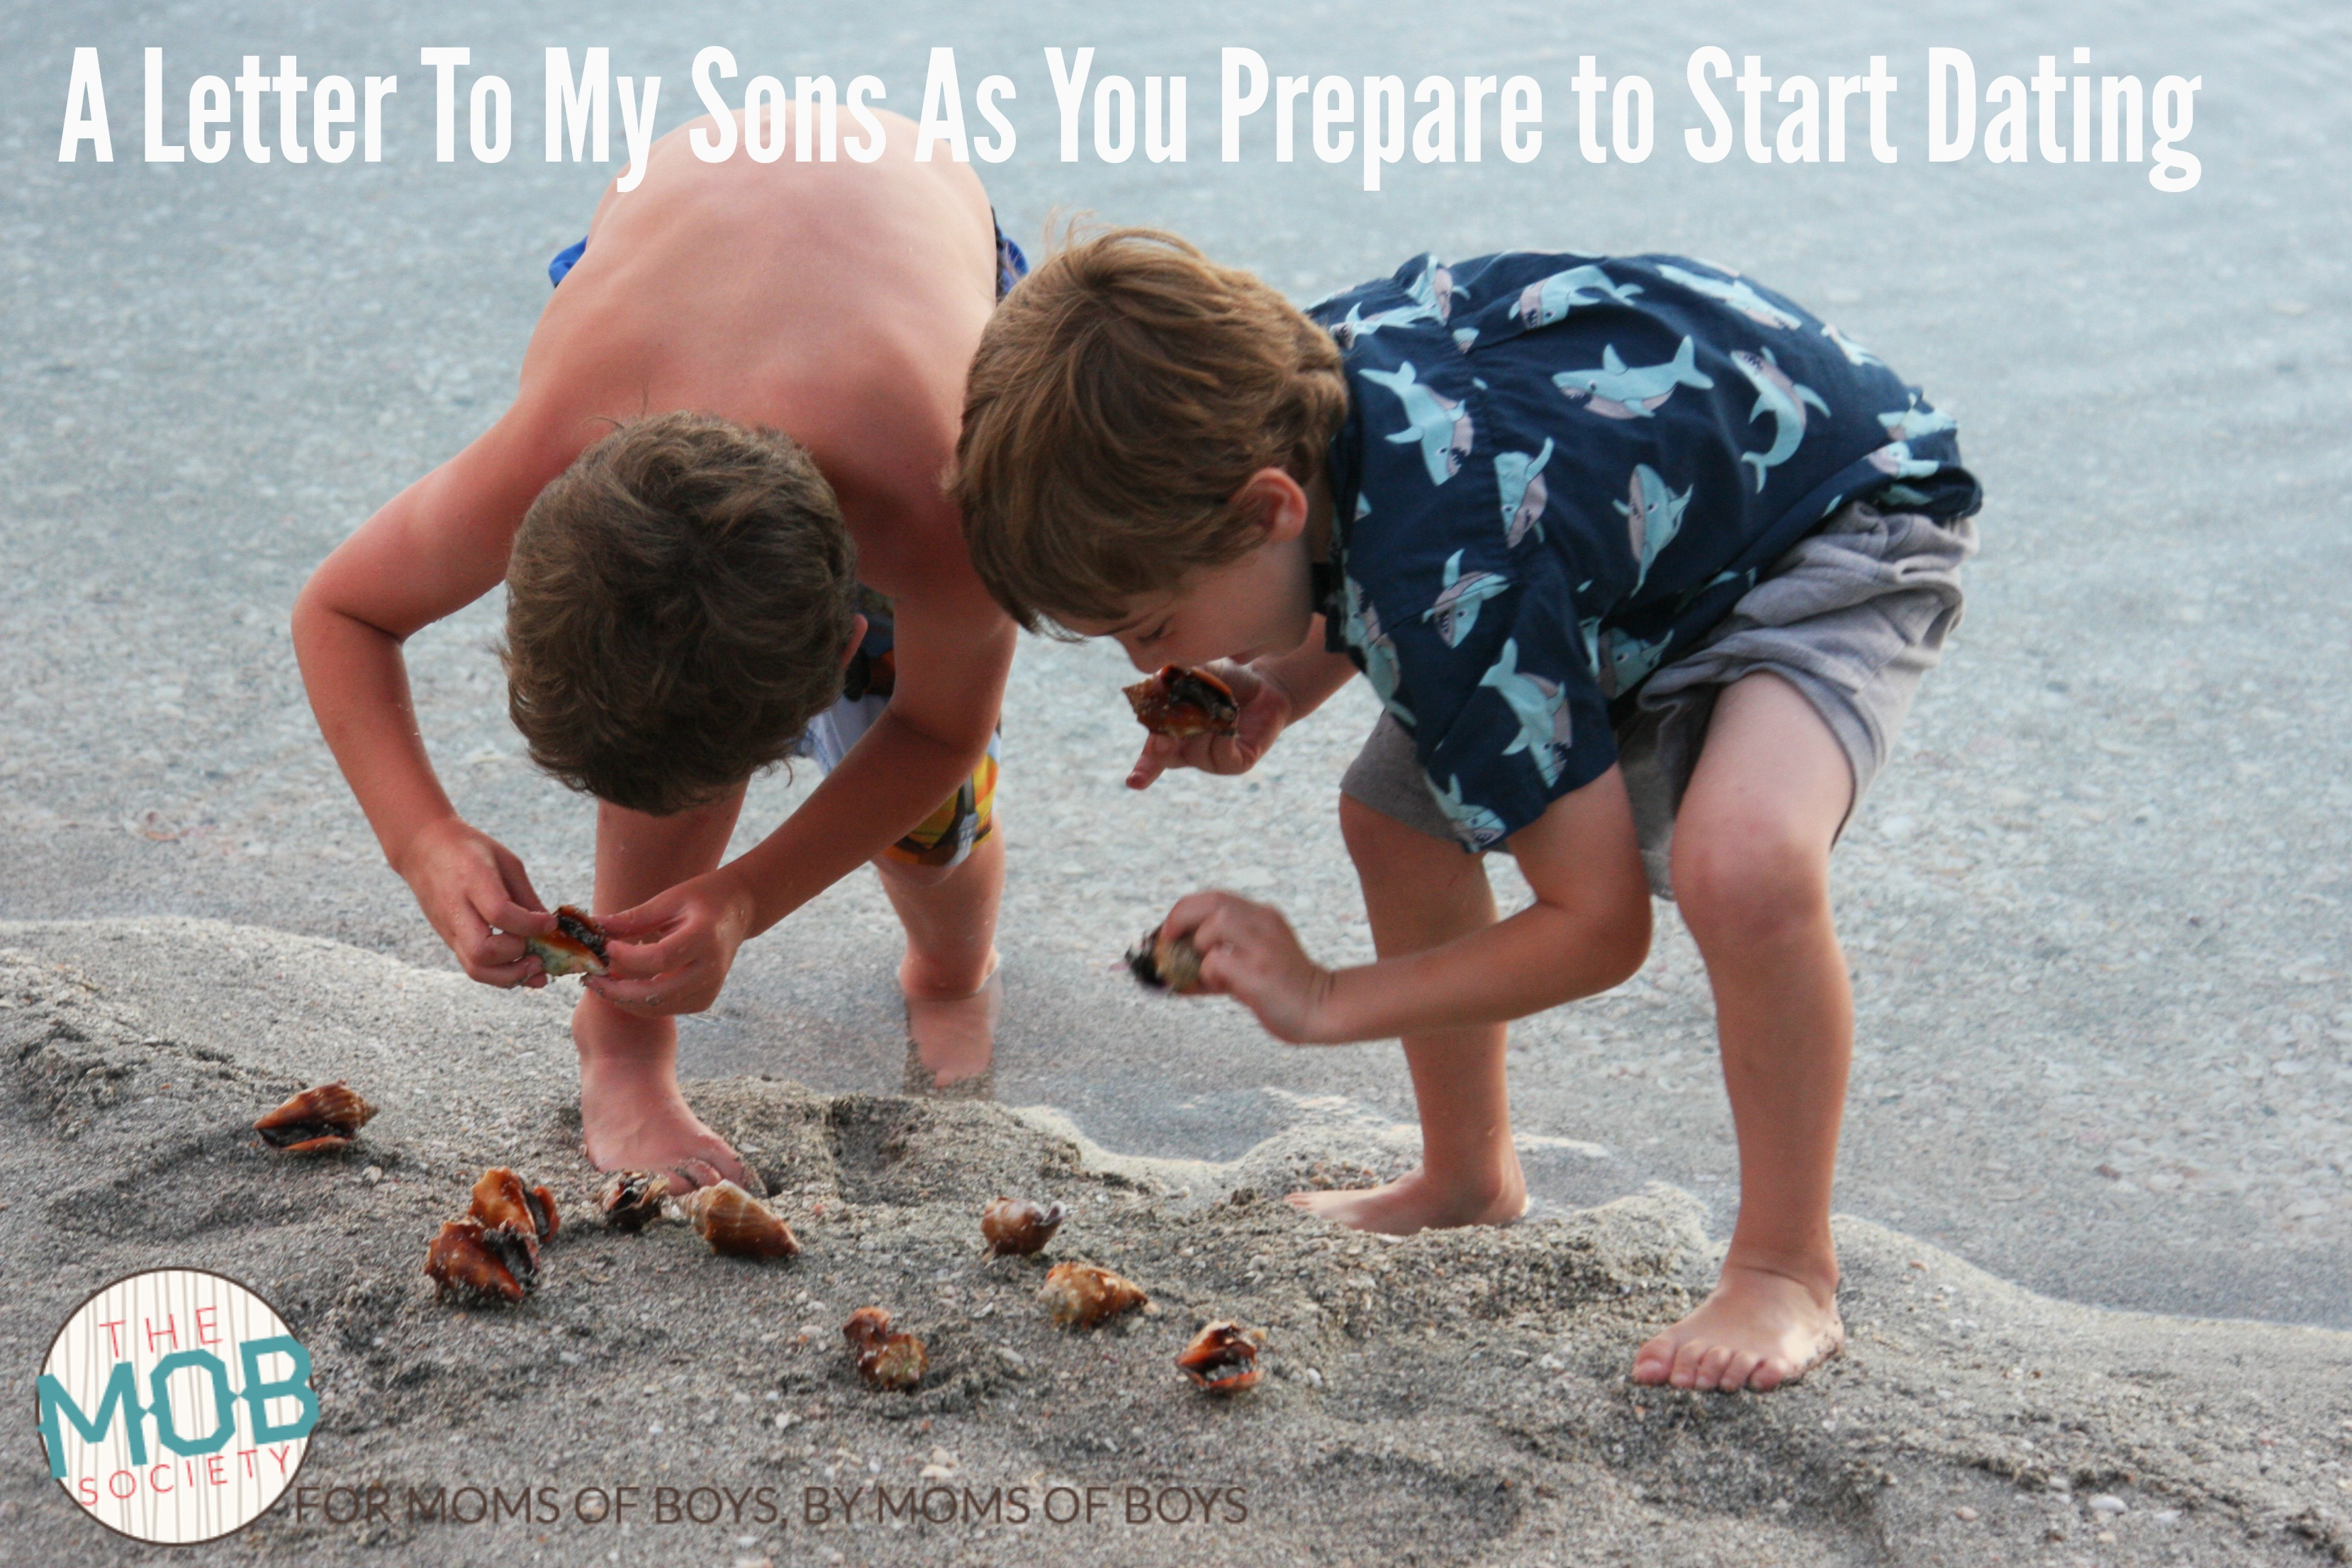 A Letter To My Sons (As You Prepare to Start Dating),